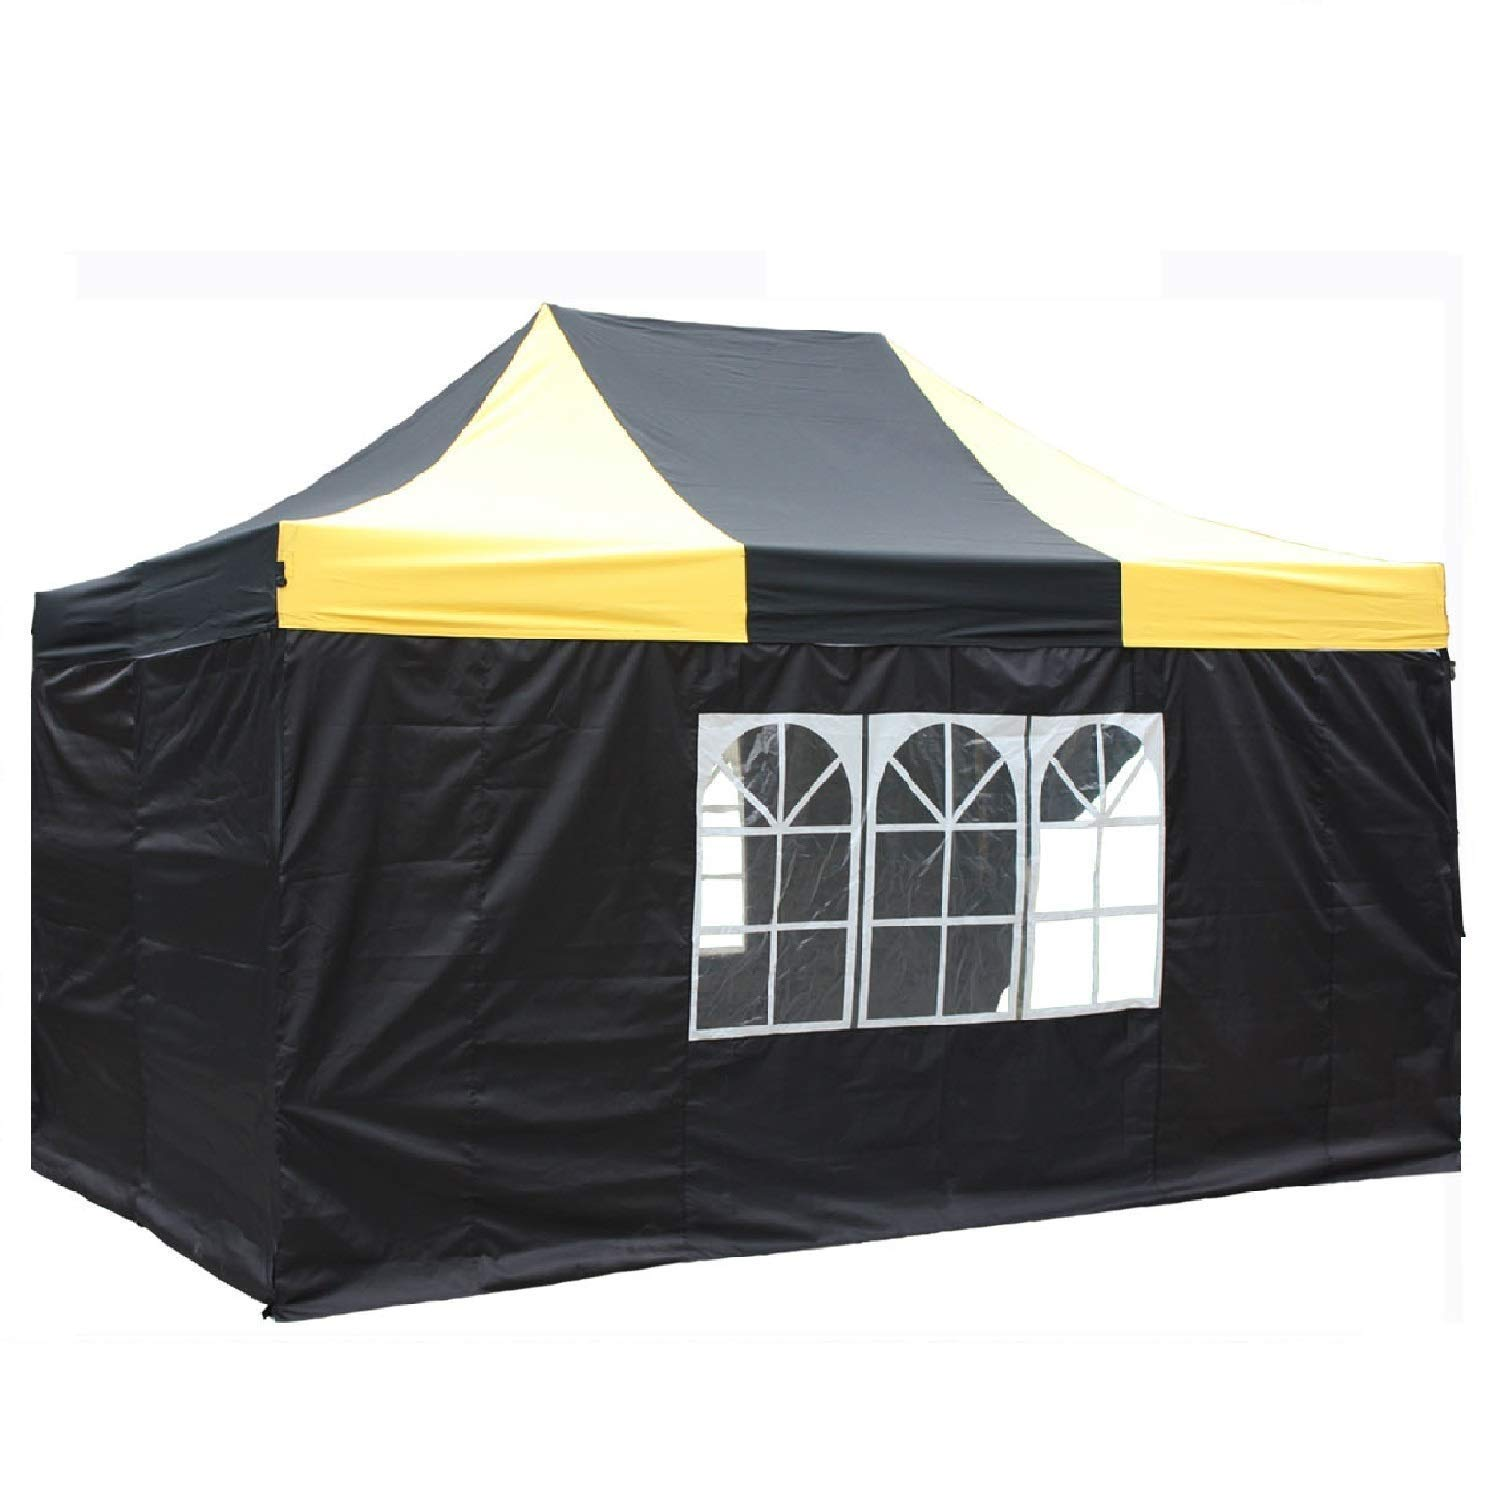 DELTA Canopies 10'x15' Ez Pop up Canopy Party Tent Instant Gazebos 100% Waterproof Top with 4 Removable Sides Black/Yellow - E Model 141[並行輸入]   B00J8772LQ